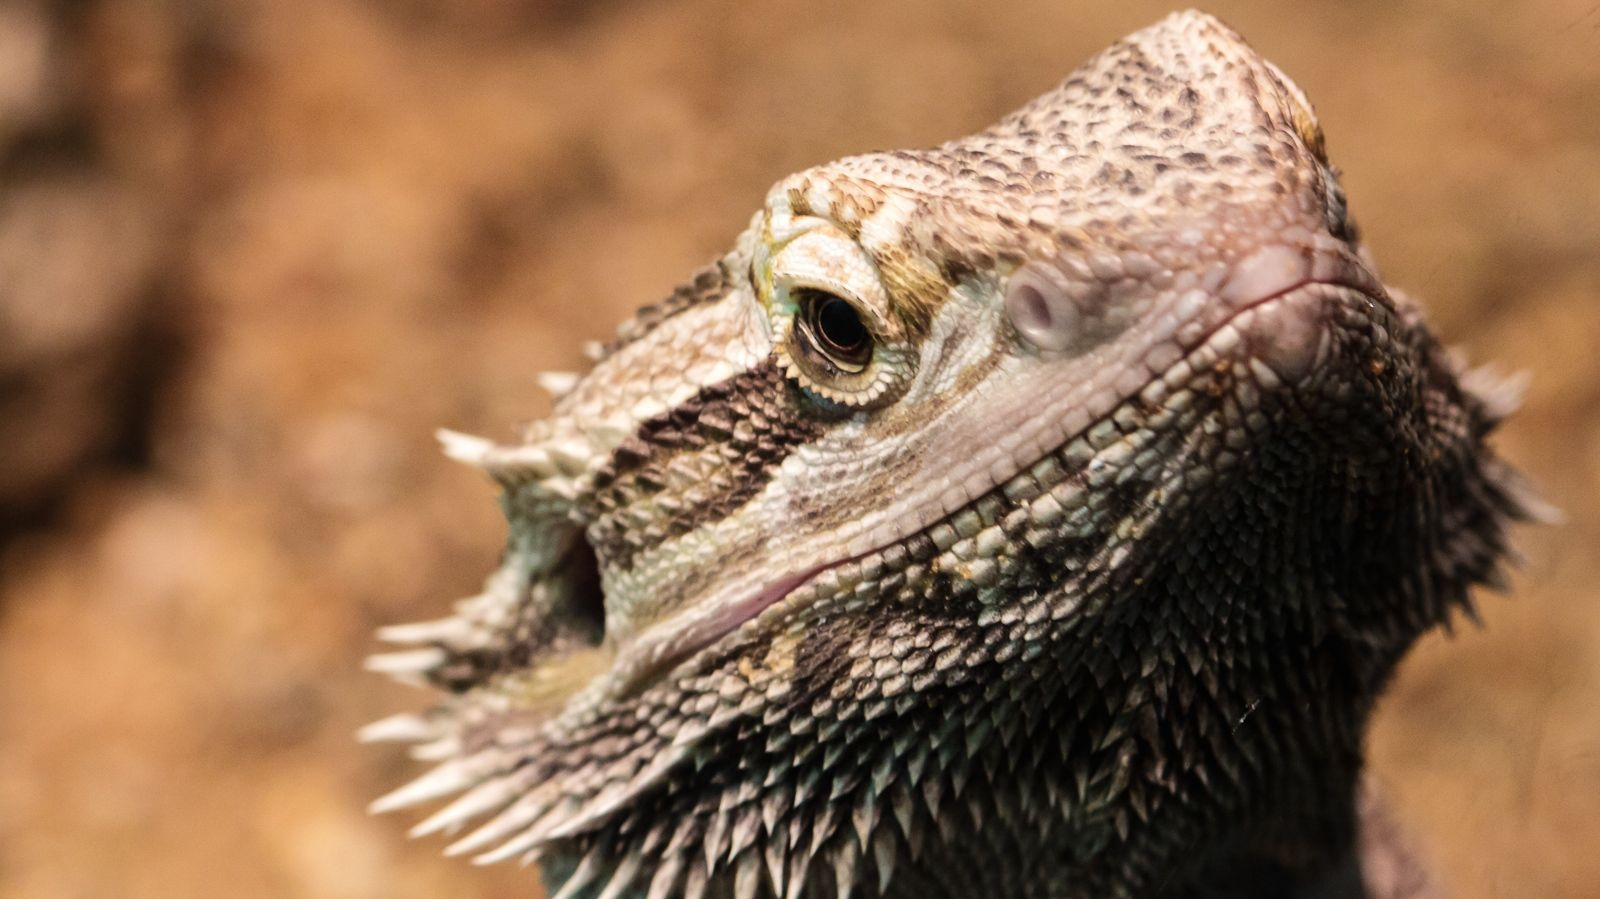 beardedlizard